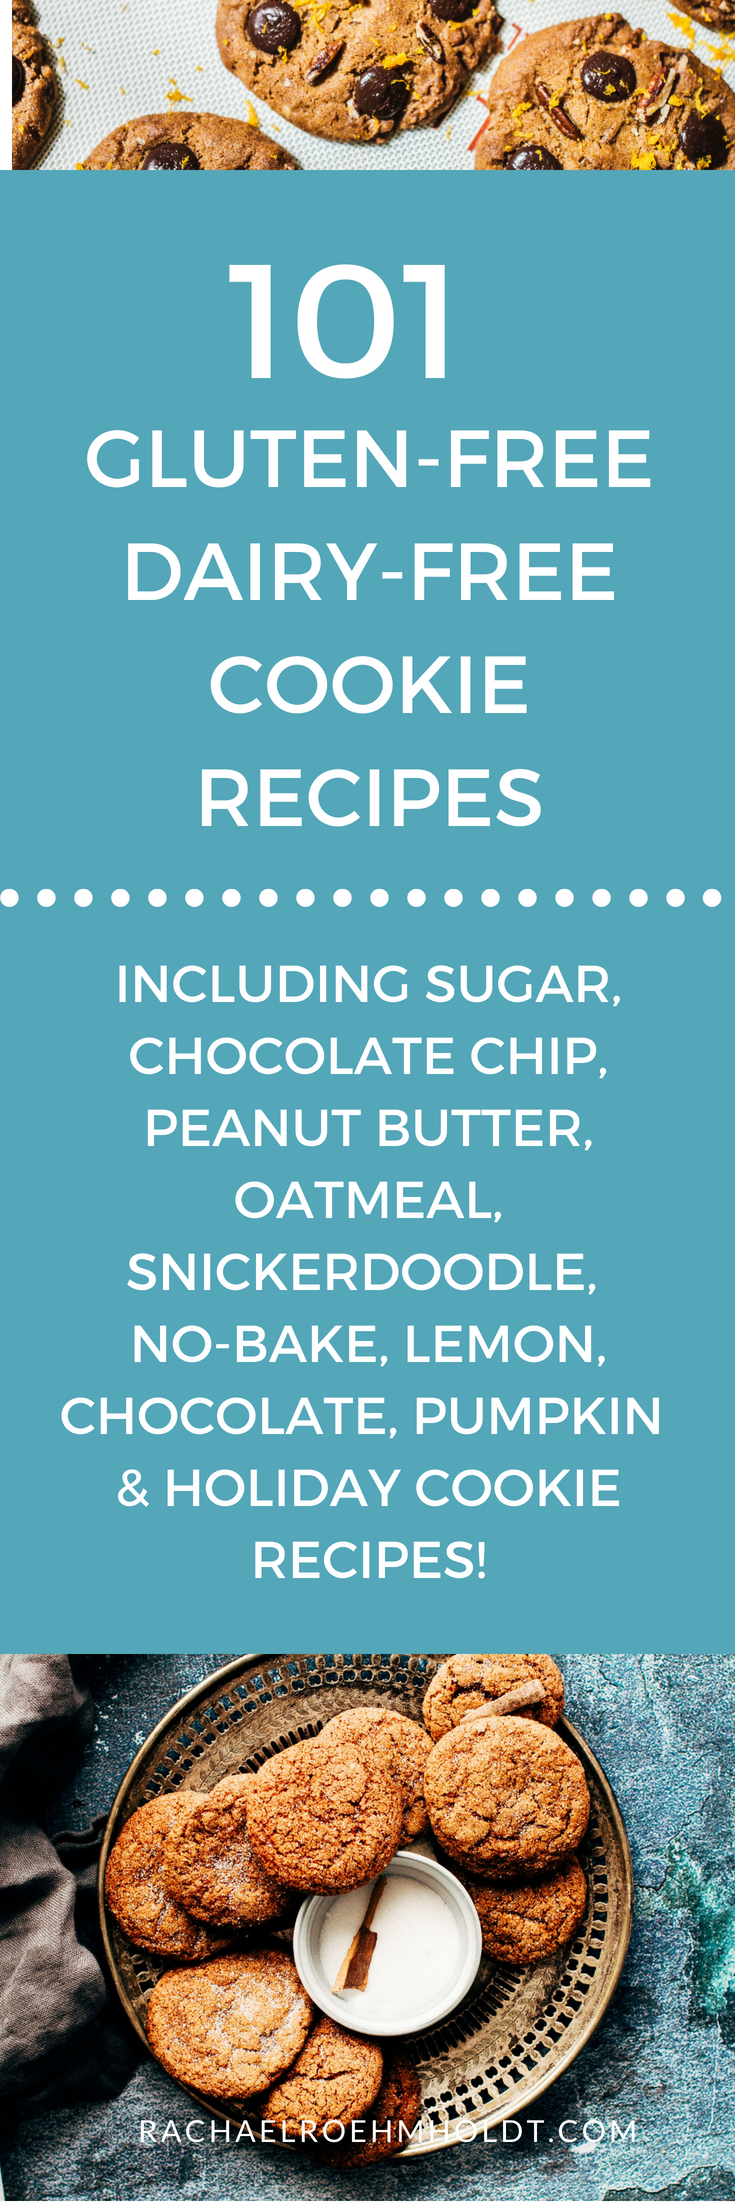 101 Gluten-free Dairy-free Cookie Recipes. Included in this gluten-free dairy-free recipe roundup are: sugar, chocolate chip, peanut butter, oatmeal, snickerdoodle, no-bake, lemon, chocolate, pumpkin, and holiday cookie recipes. Click through to check out all the awesome recipes at RachaelRoehmholdt.com.